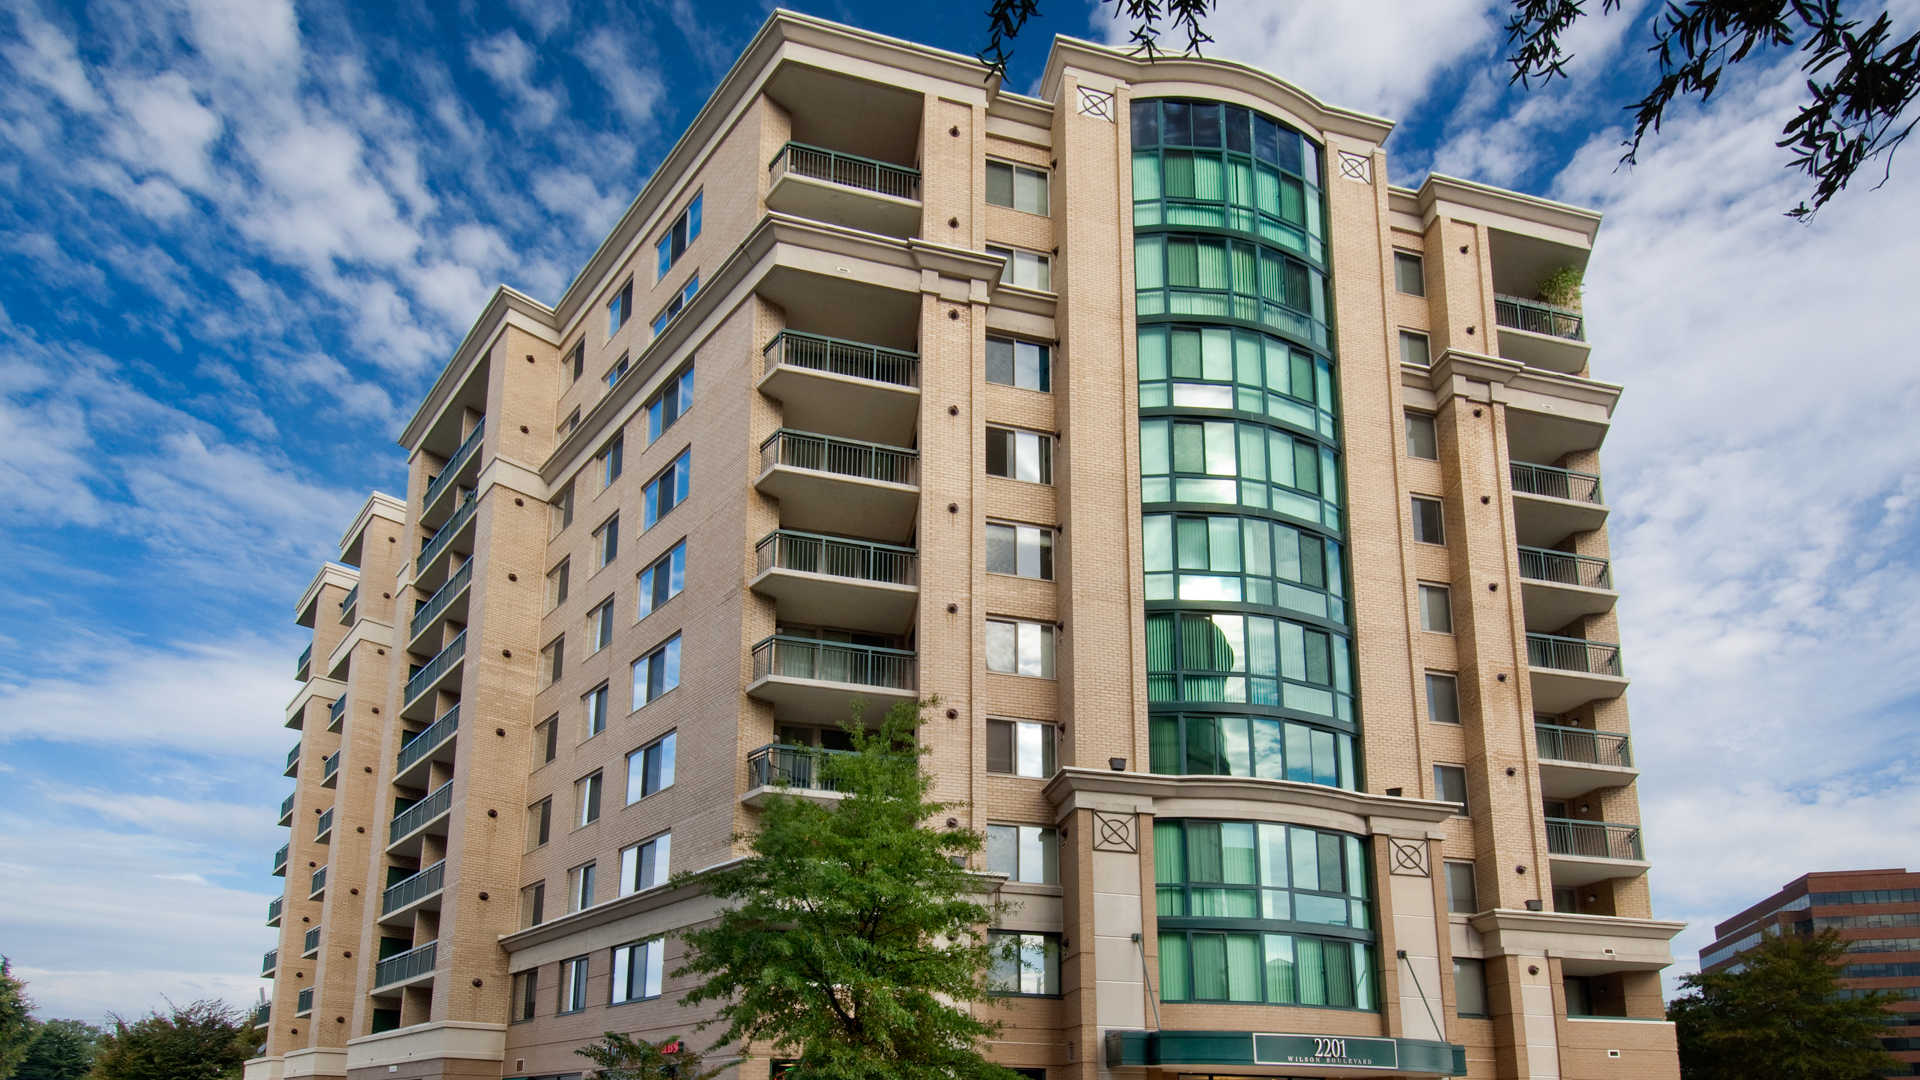 Pleasing 100 Best 2 Bedroom Apartments In Arlington Va With Pics Home Interior And Landscaping Ologienasavecom